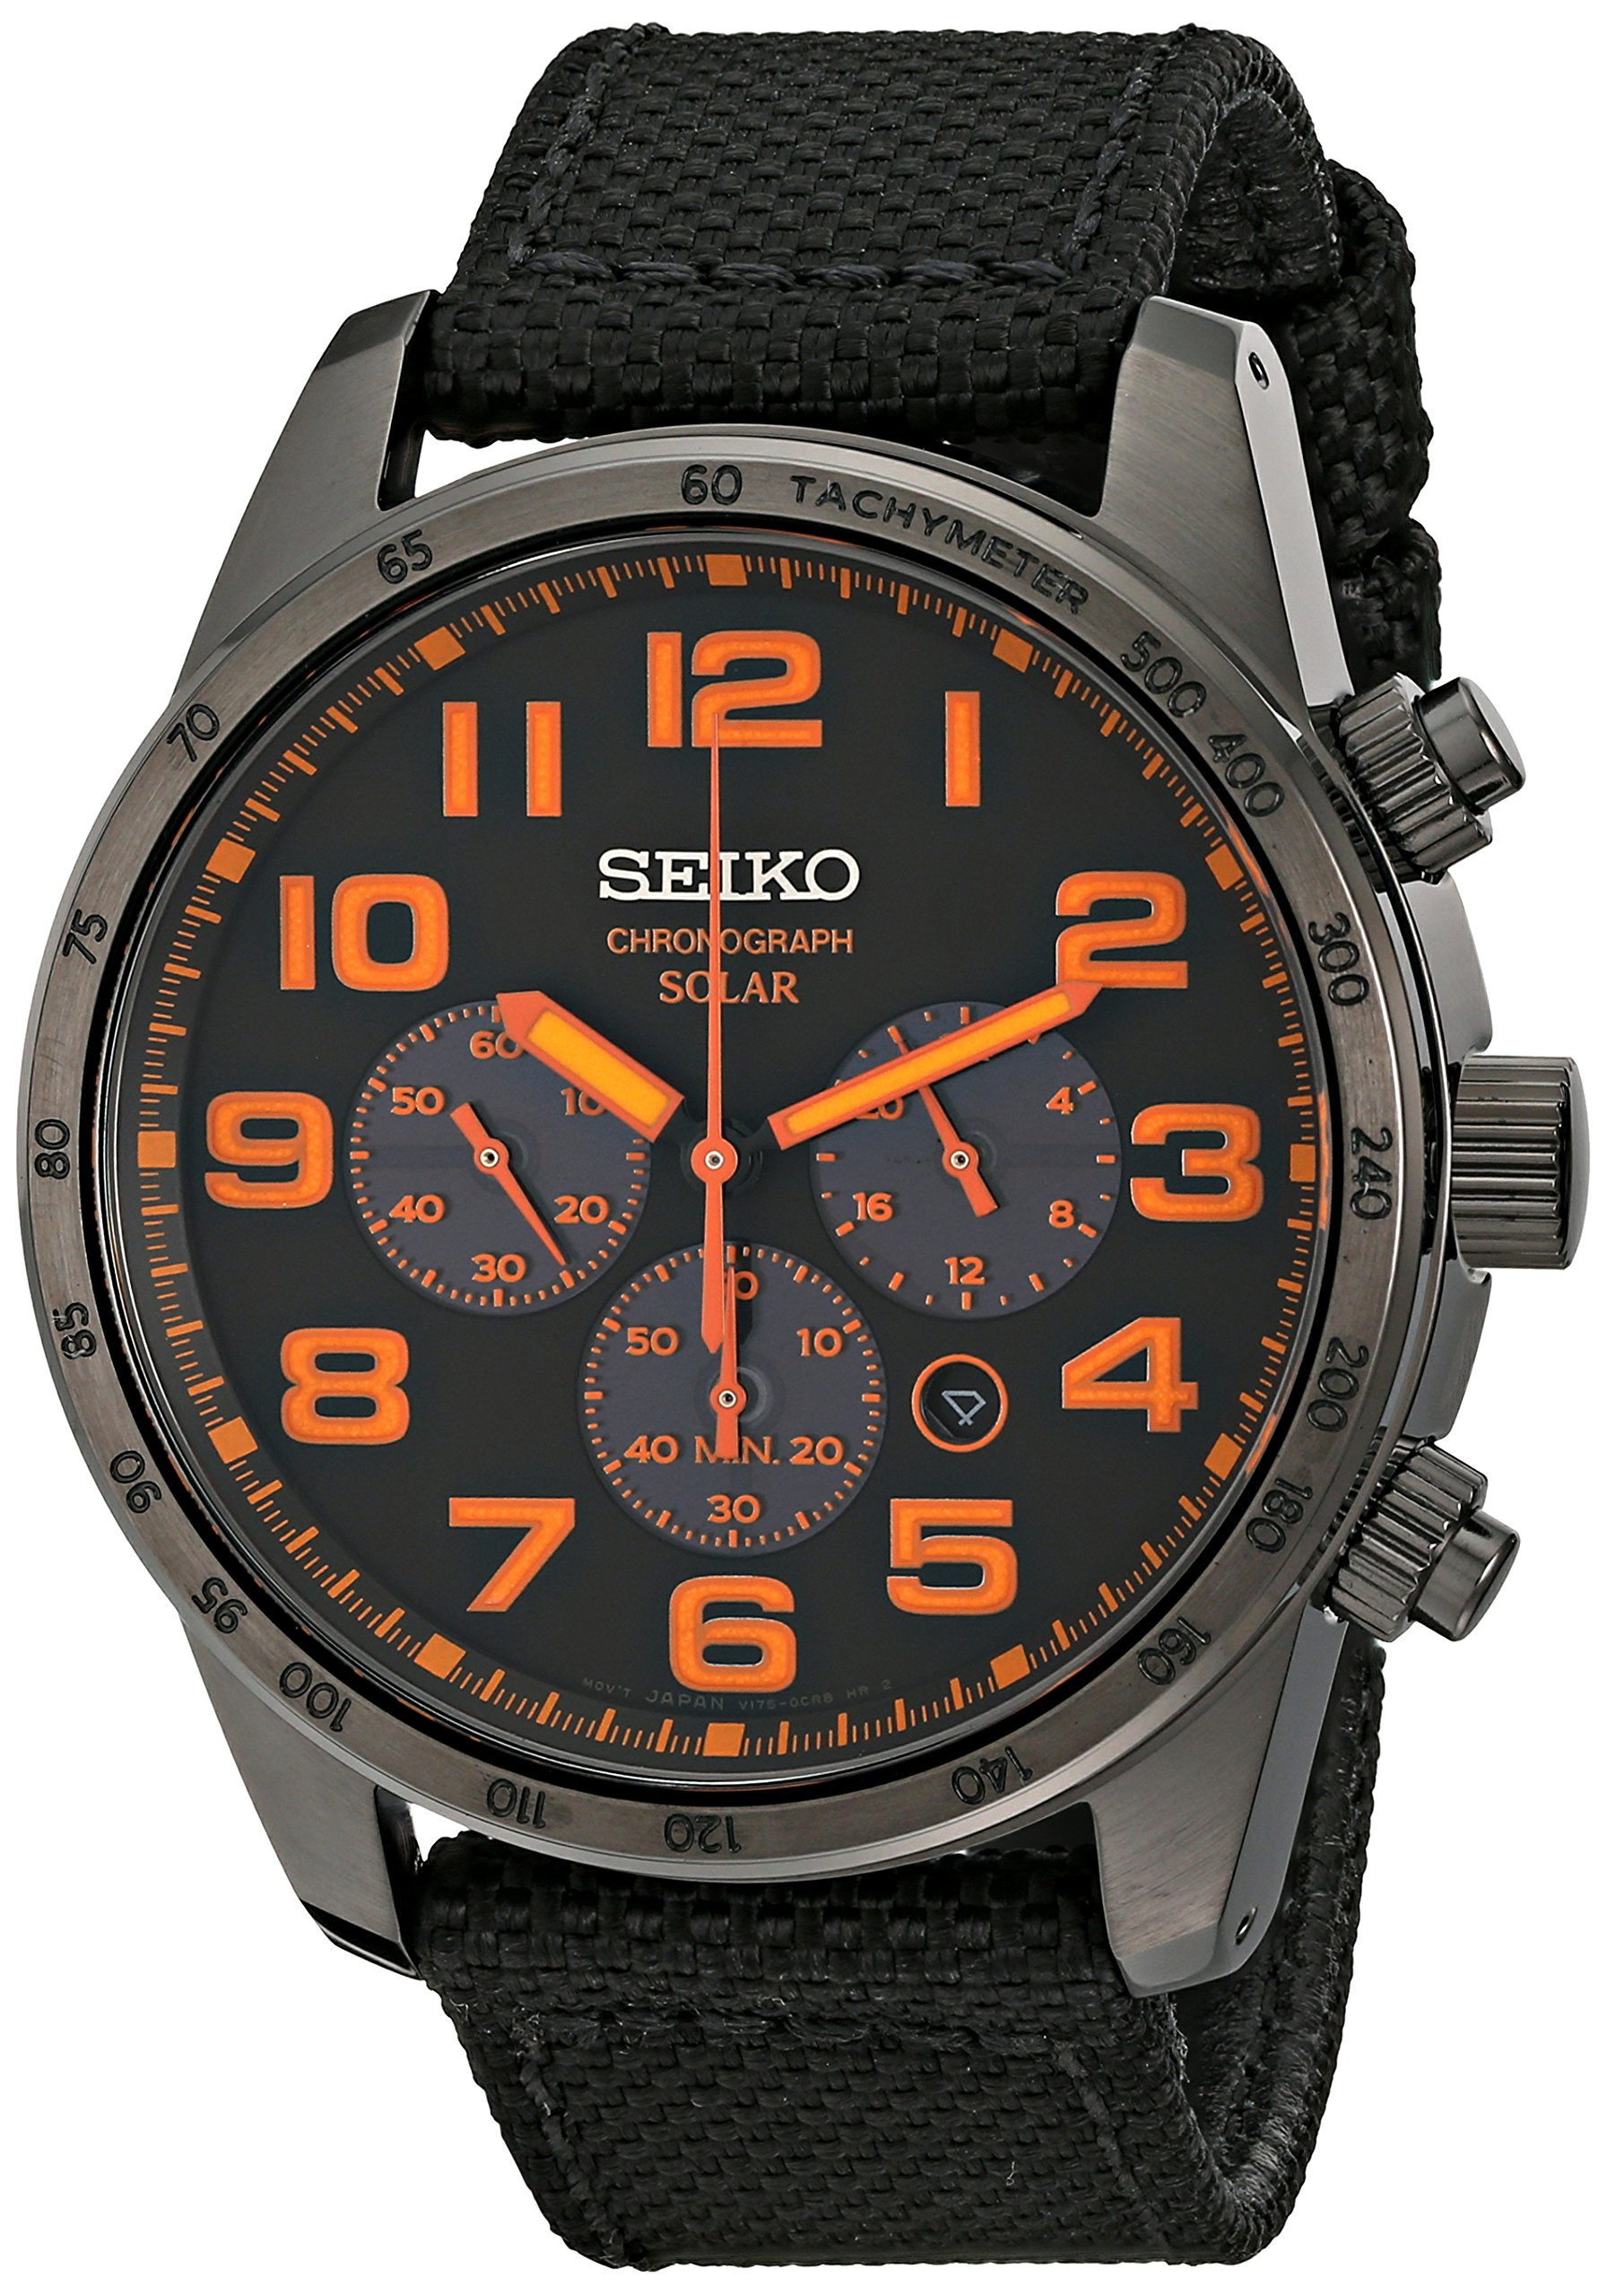 had my com chronograph id done gents powered accidentally solar alarm one it watch watchshop mens seiko died this which seal for i machine when last washing watches the chose years went not through